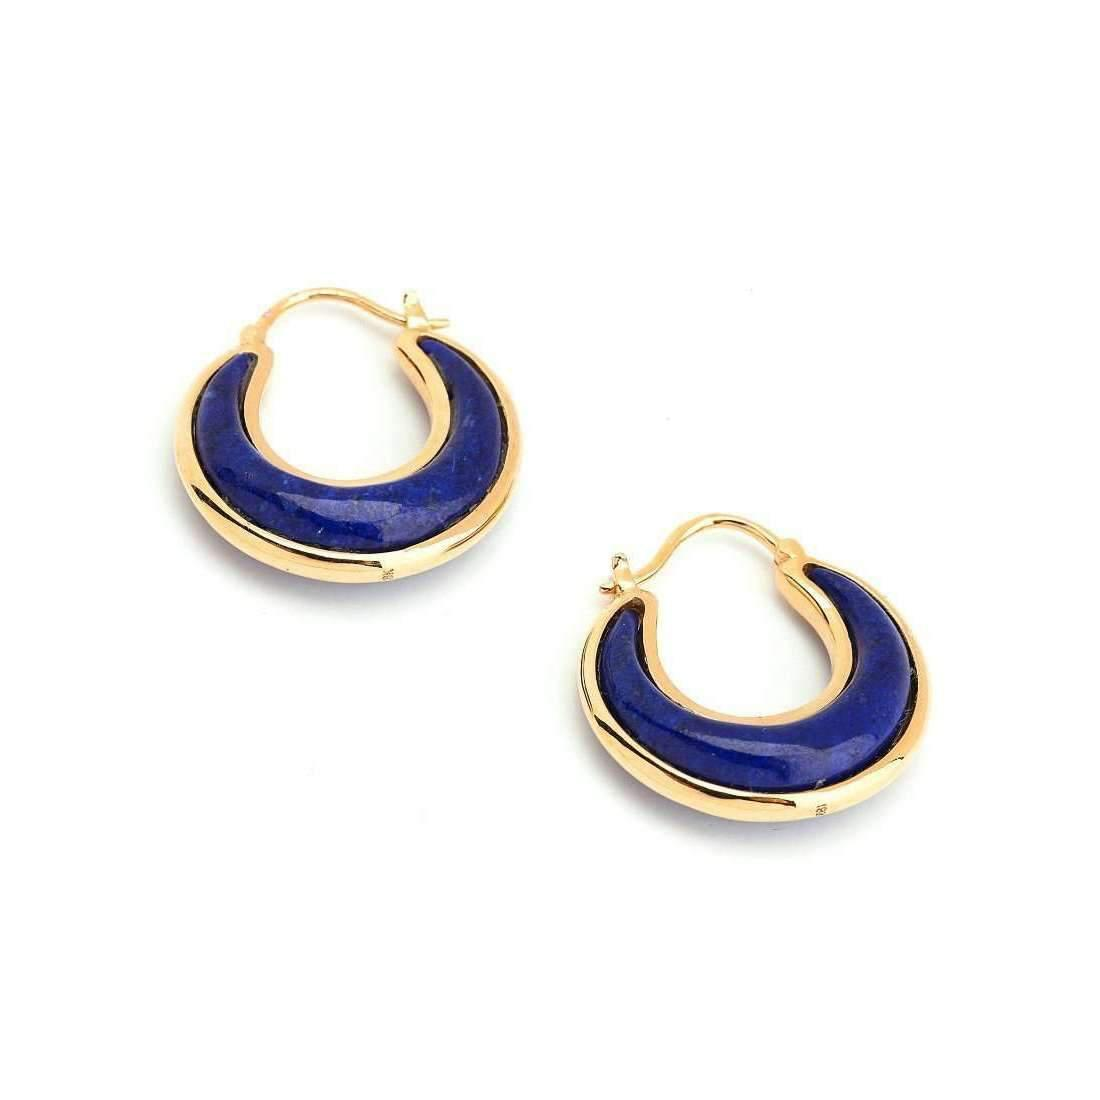 Syna 18kt Lapis Lazuli Earrings NzmSv3